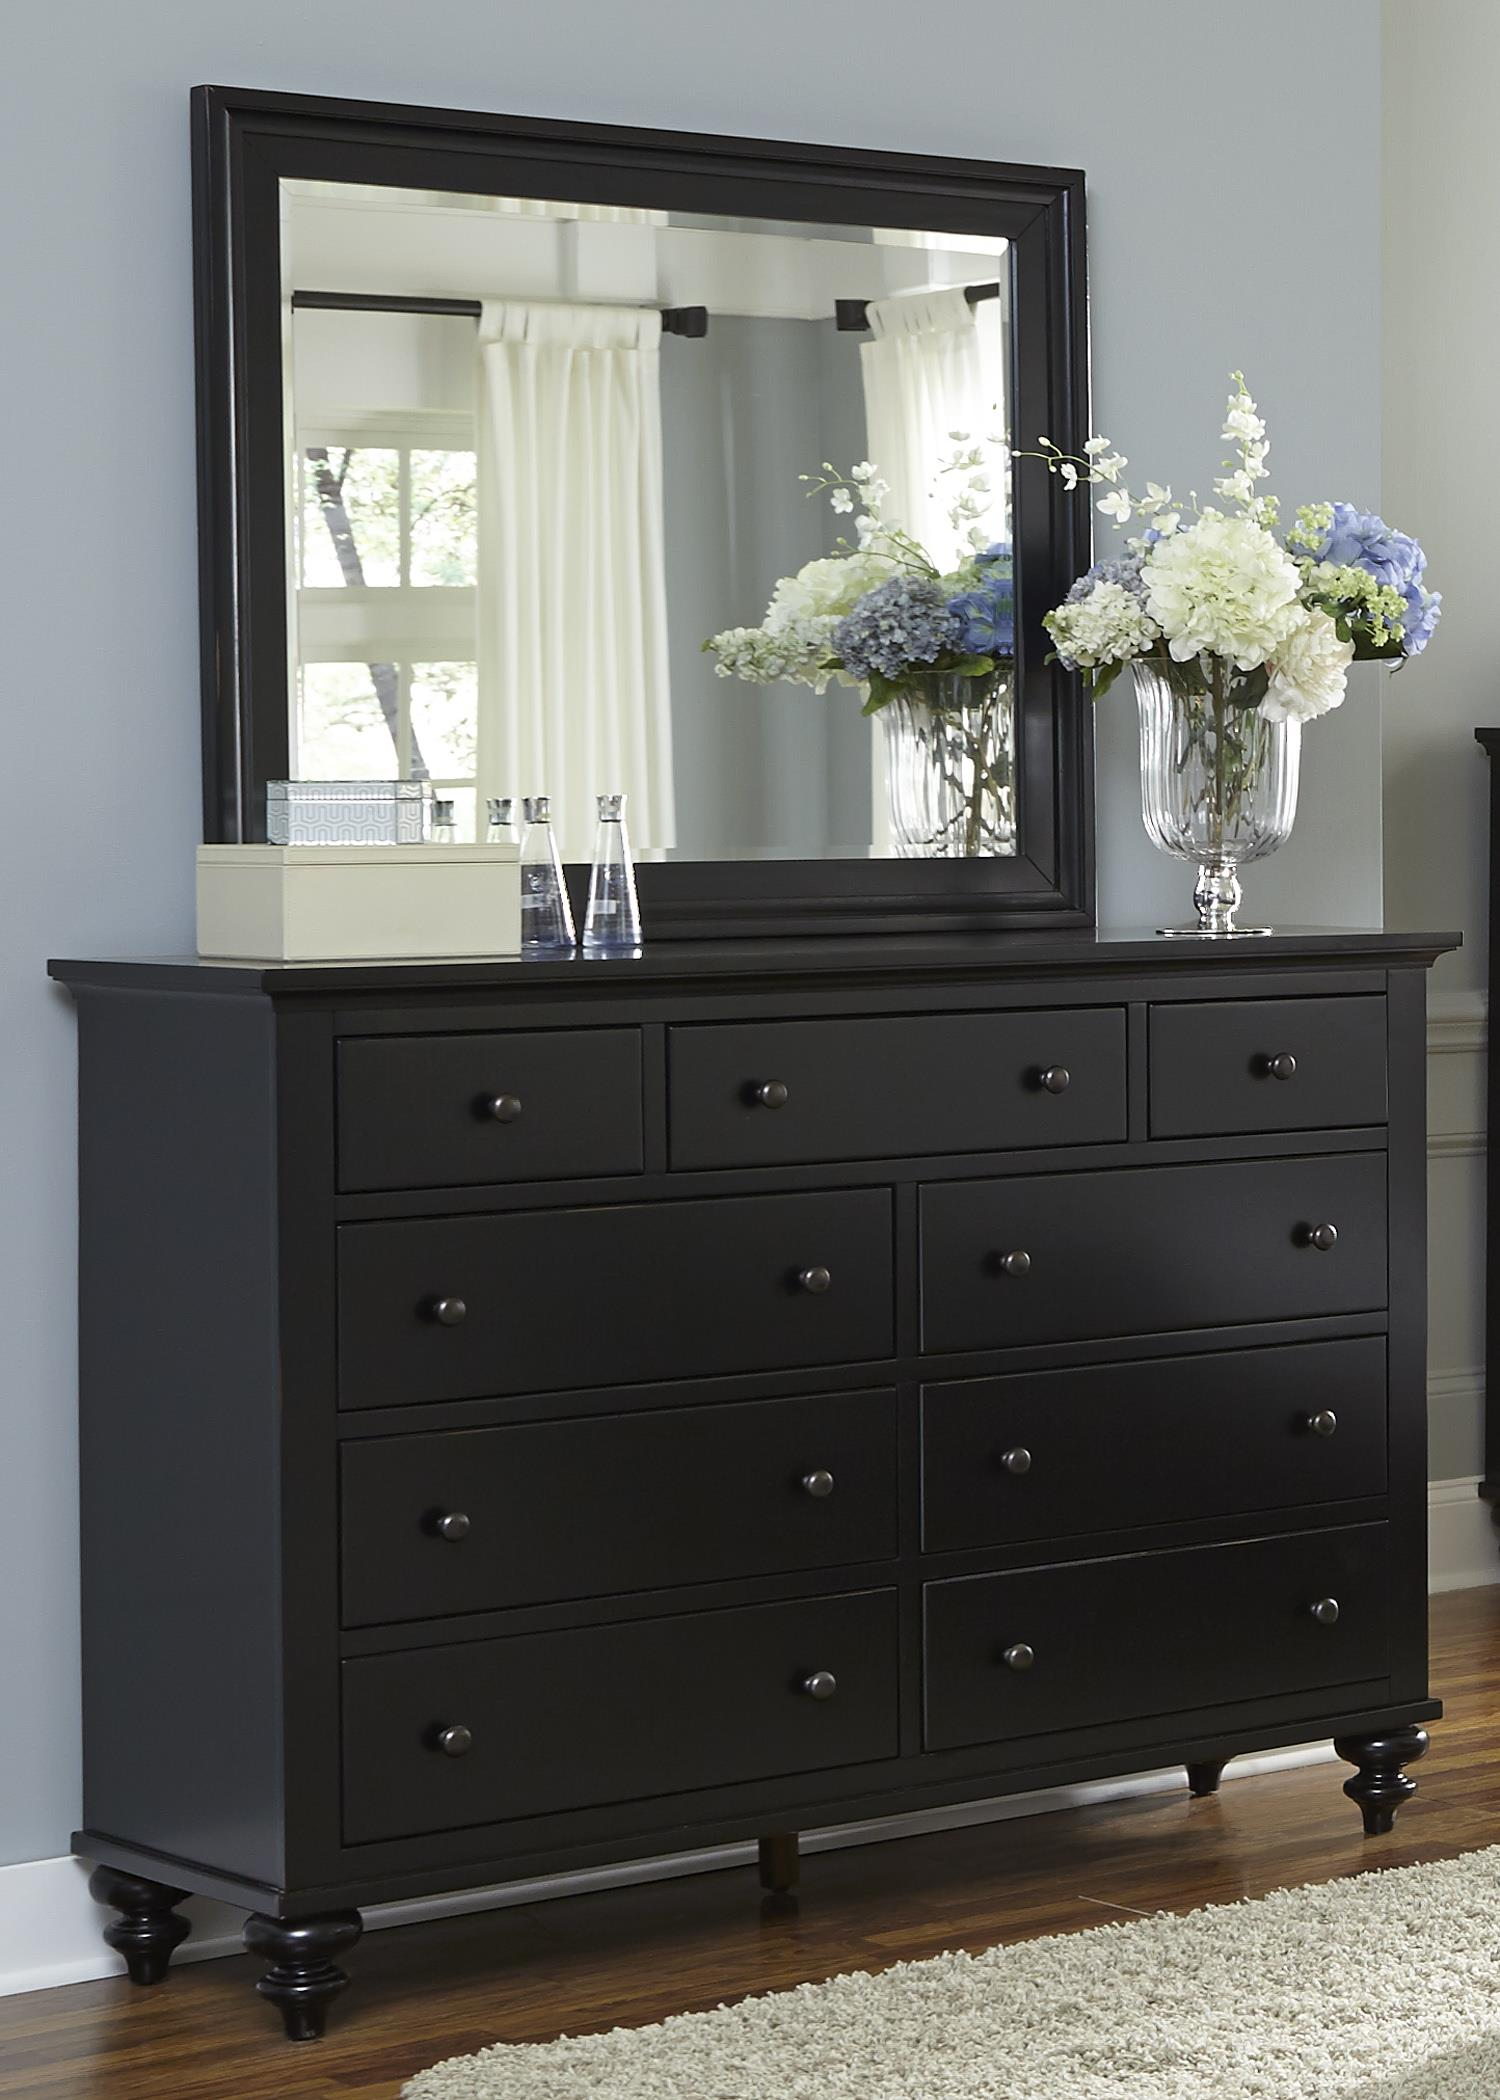 Liberty Furniture Hamilton III Dresser & Mirror - Item Number: 441-BR-DM